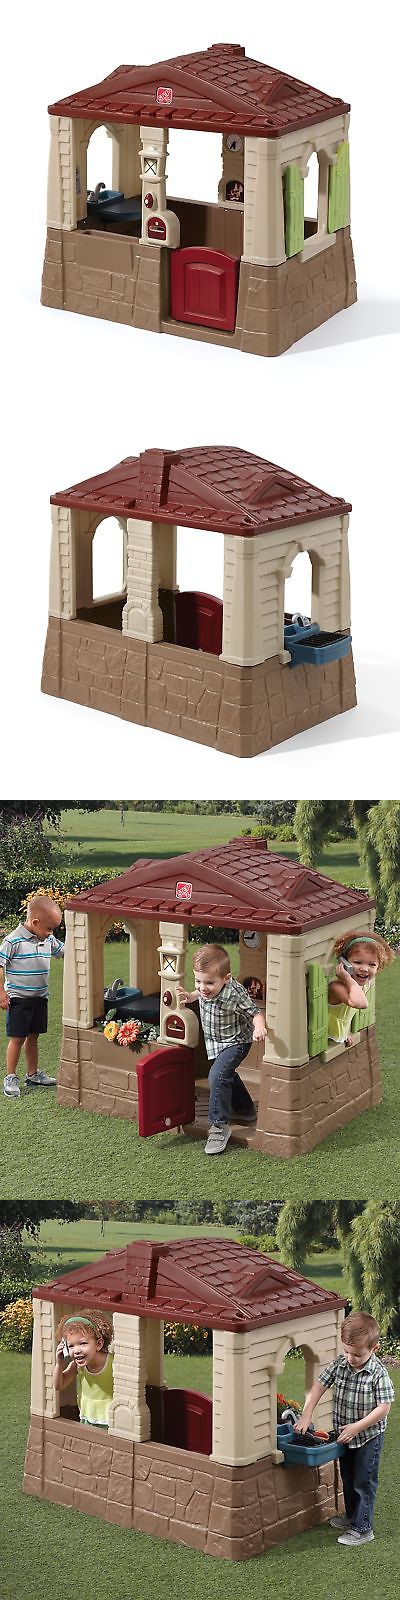 Permanent Playhouses 145995 Step2 Neat And Tidy Ii Playhouse -\u003e BUY